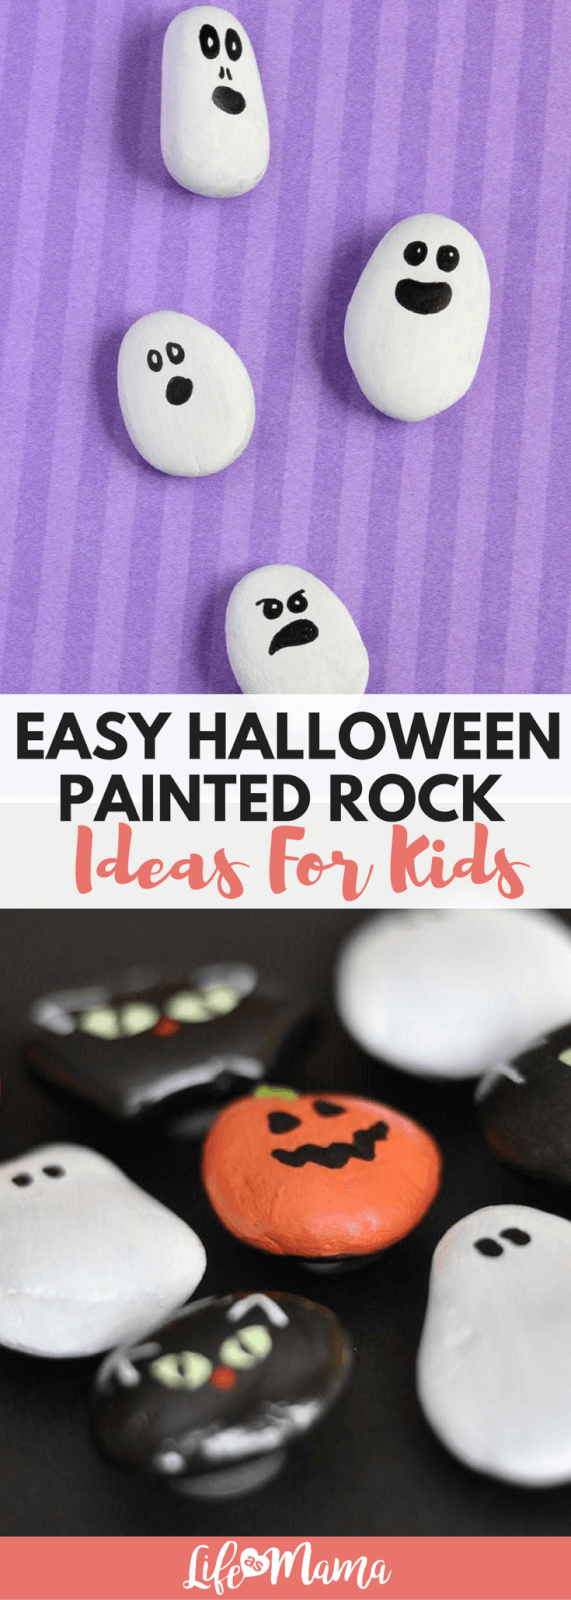 halloween painted rock